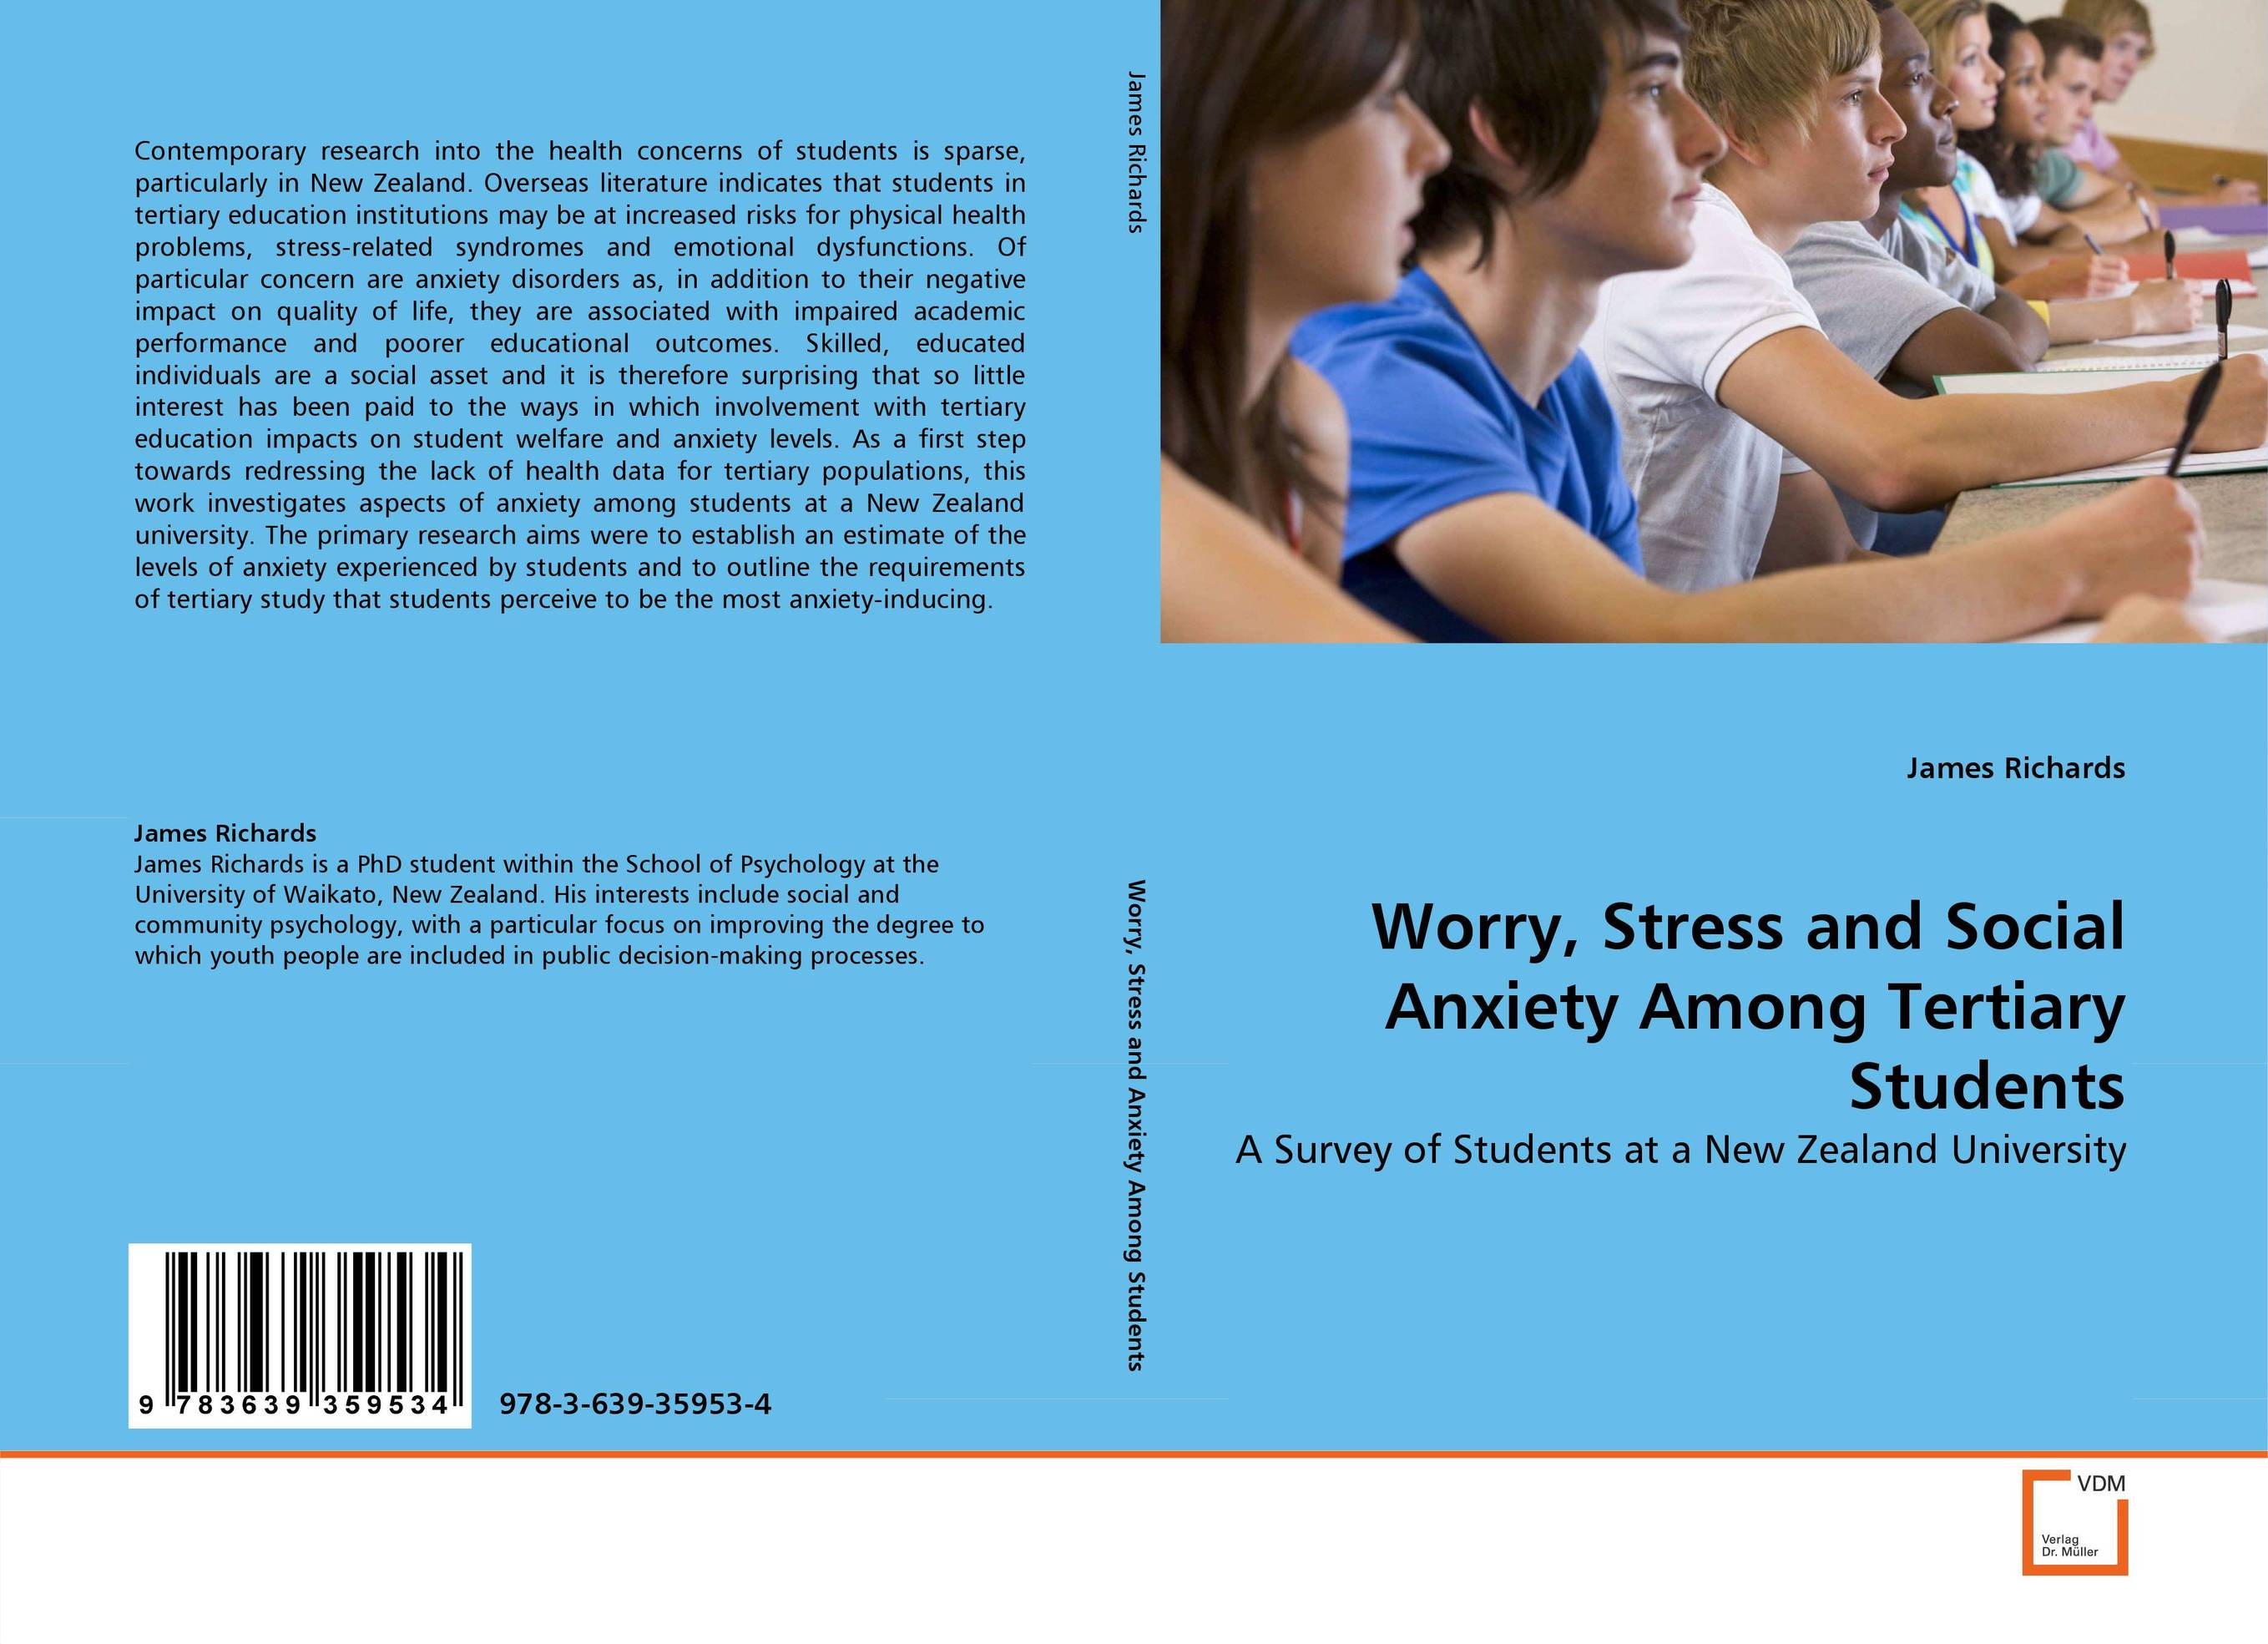 Worry, Stress and Social Anxiety Among Tertiary Students dr ripudaman singh mrs arihant kaur bhalla and er indpreet kaur stress among bank employees